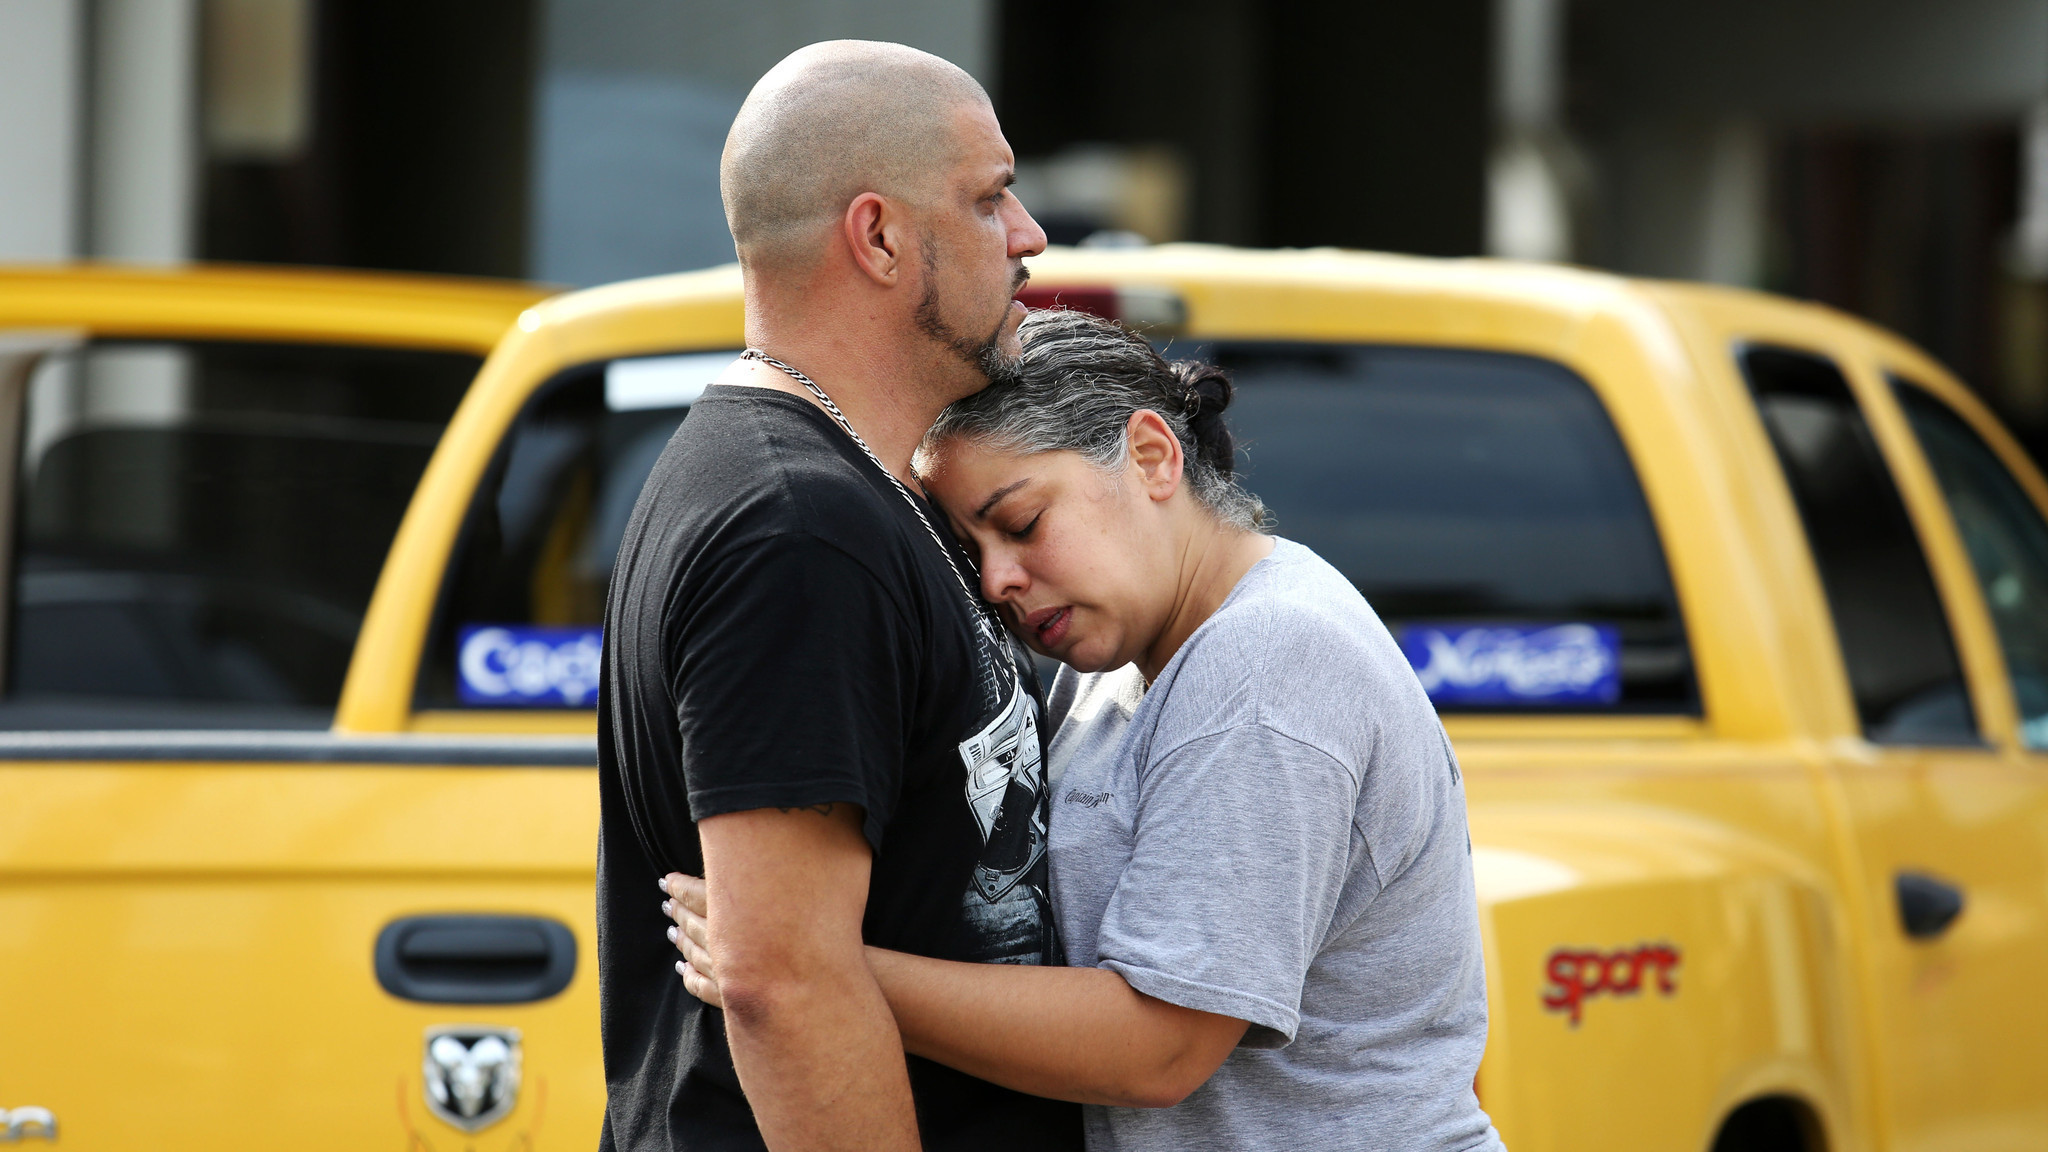 Shooting Update: Orlando Terror Attack Updates: Obama Meets With Victims